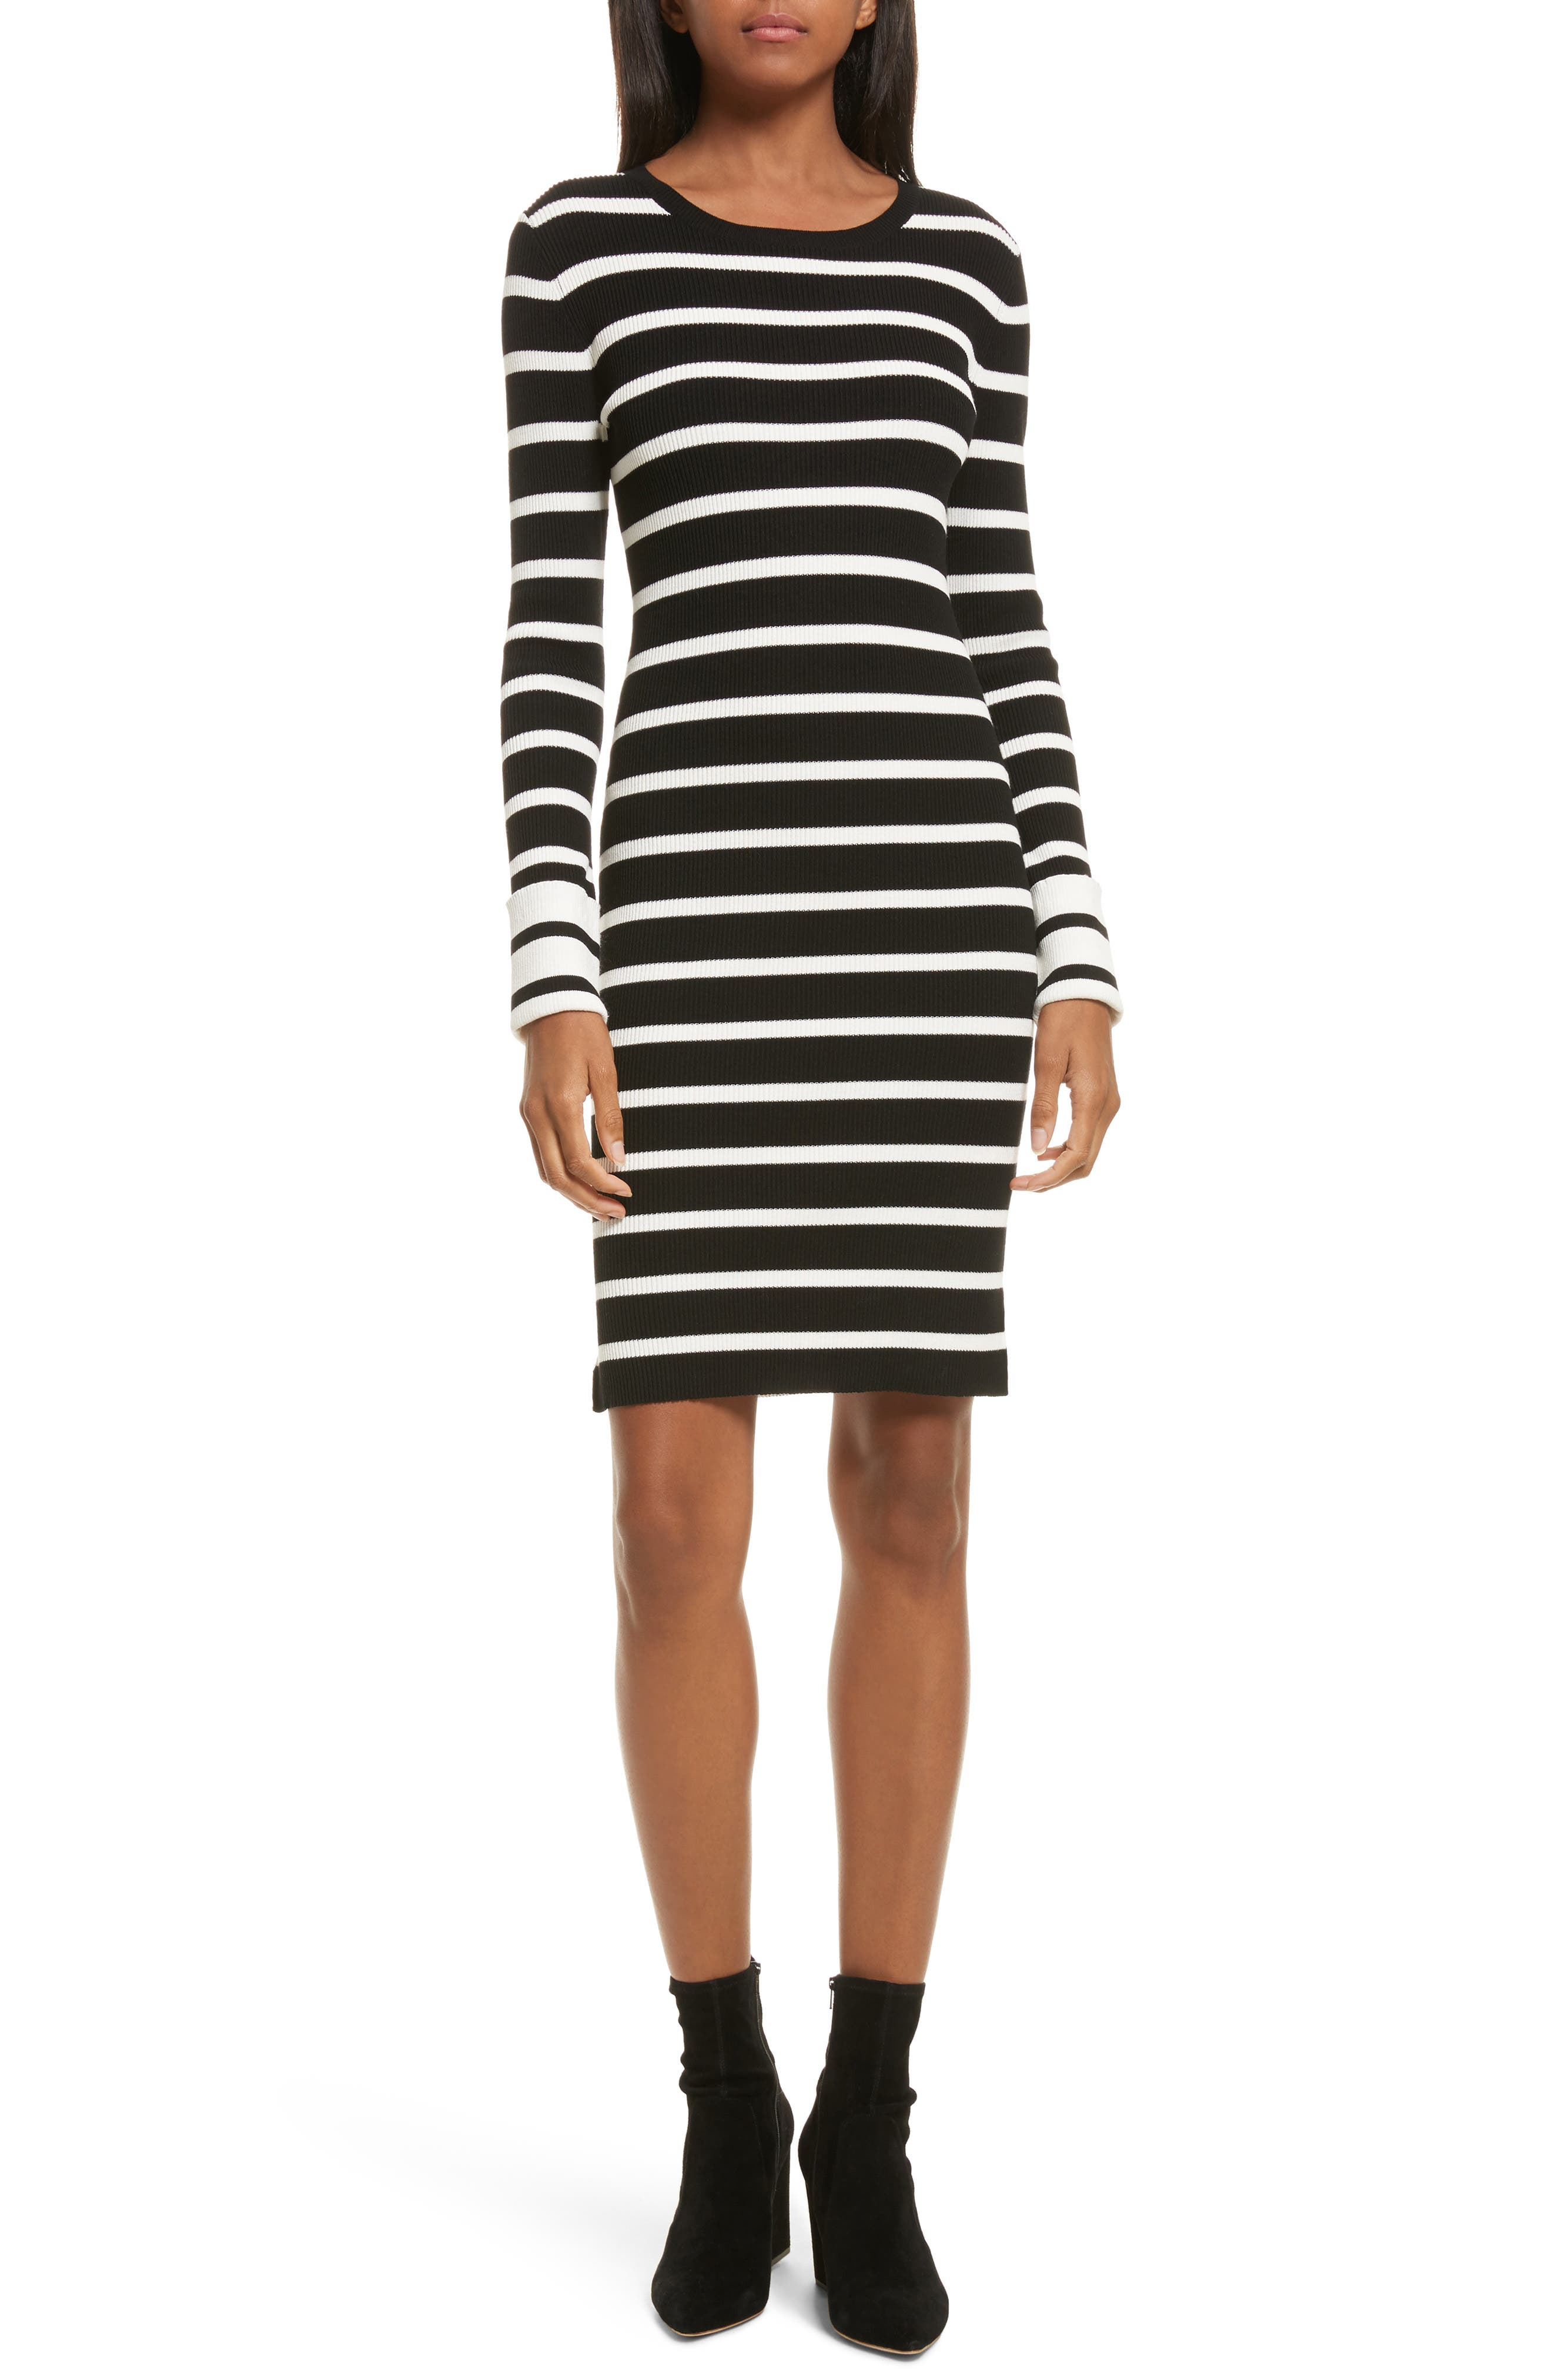 Alternate Image 1 Selected - Theory Prosecco Stripe Knit Dress